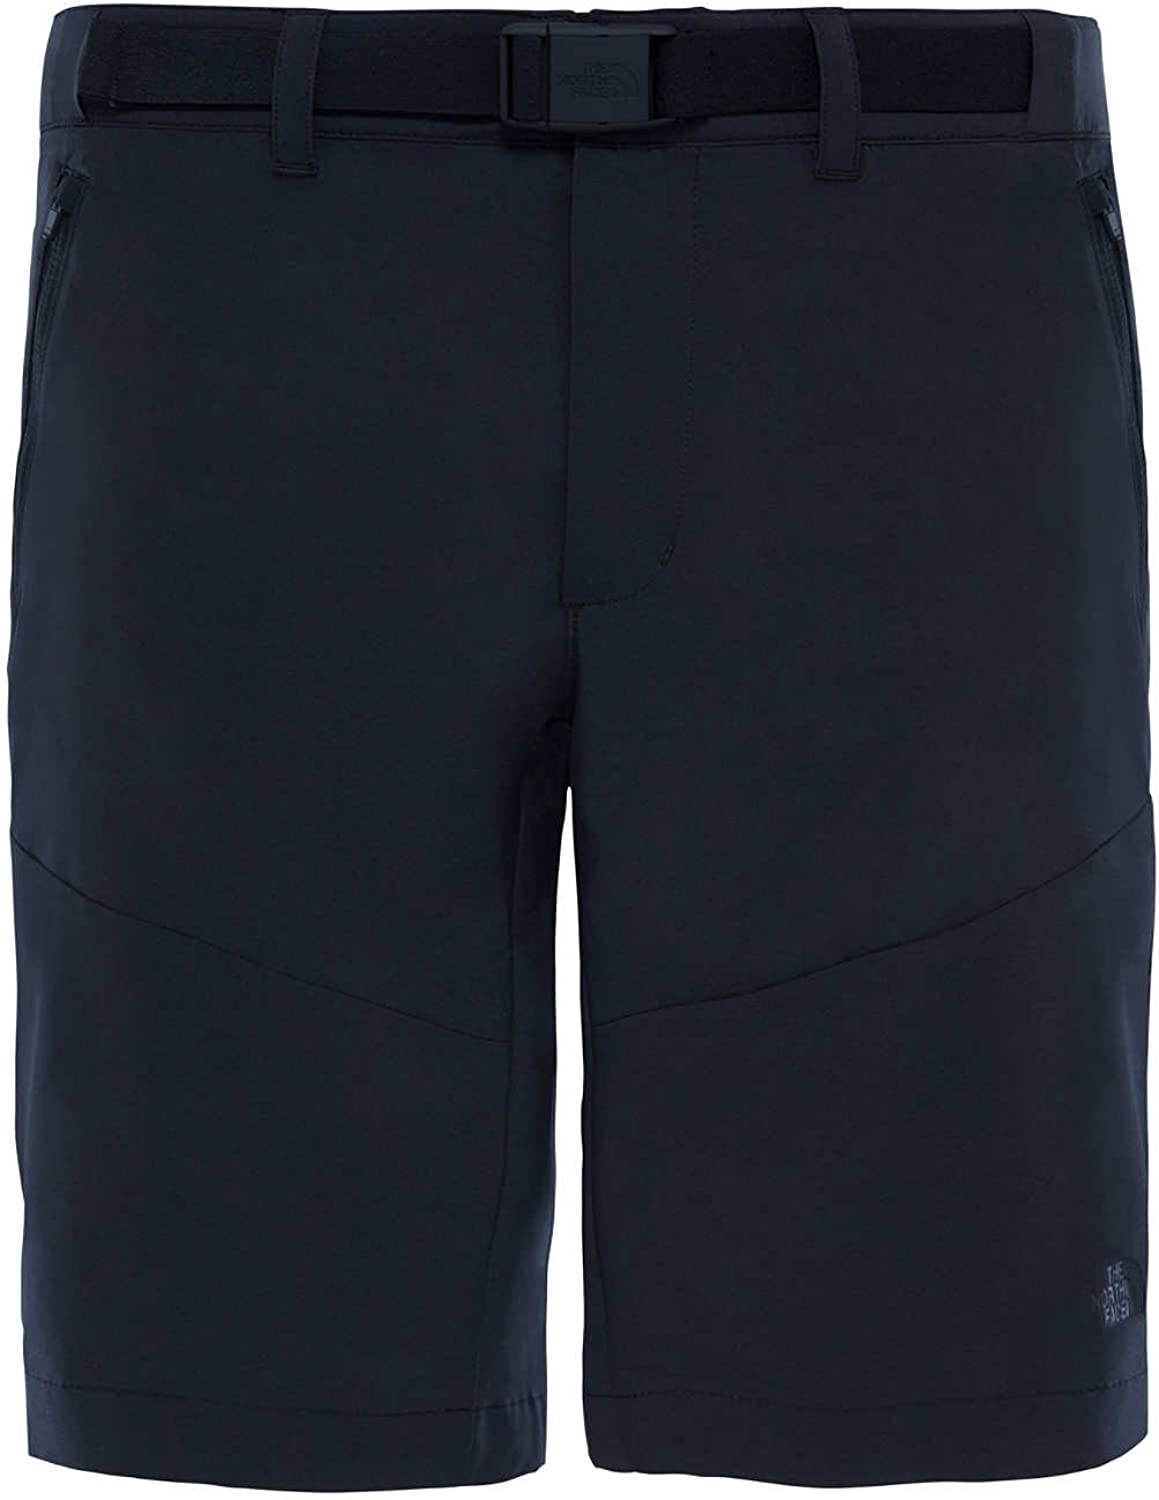 THE NORTH FACE 3jyh Shorts, Kurze